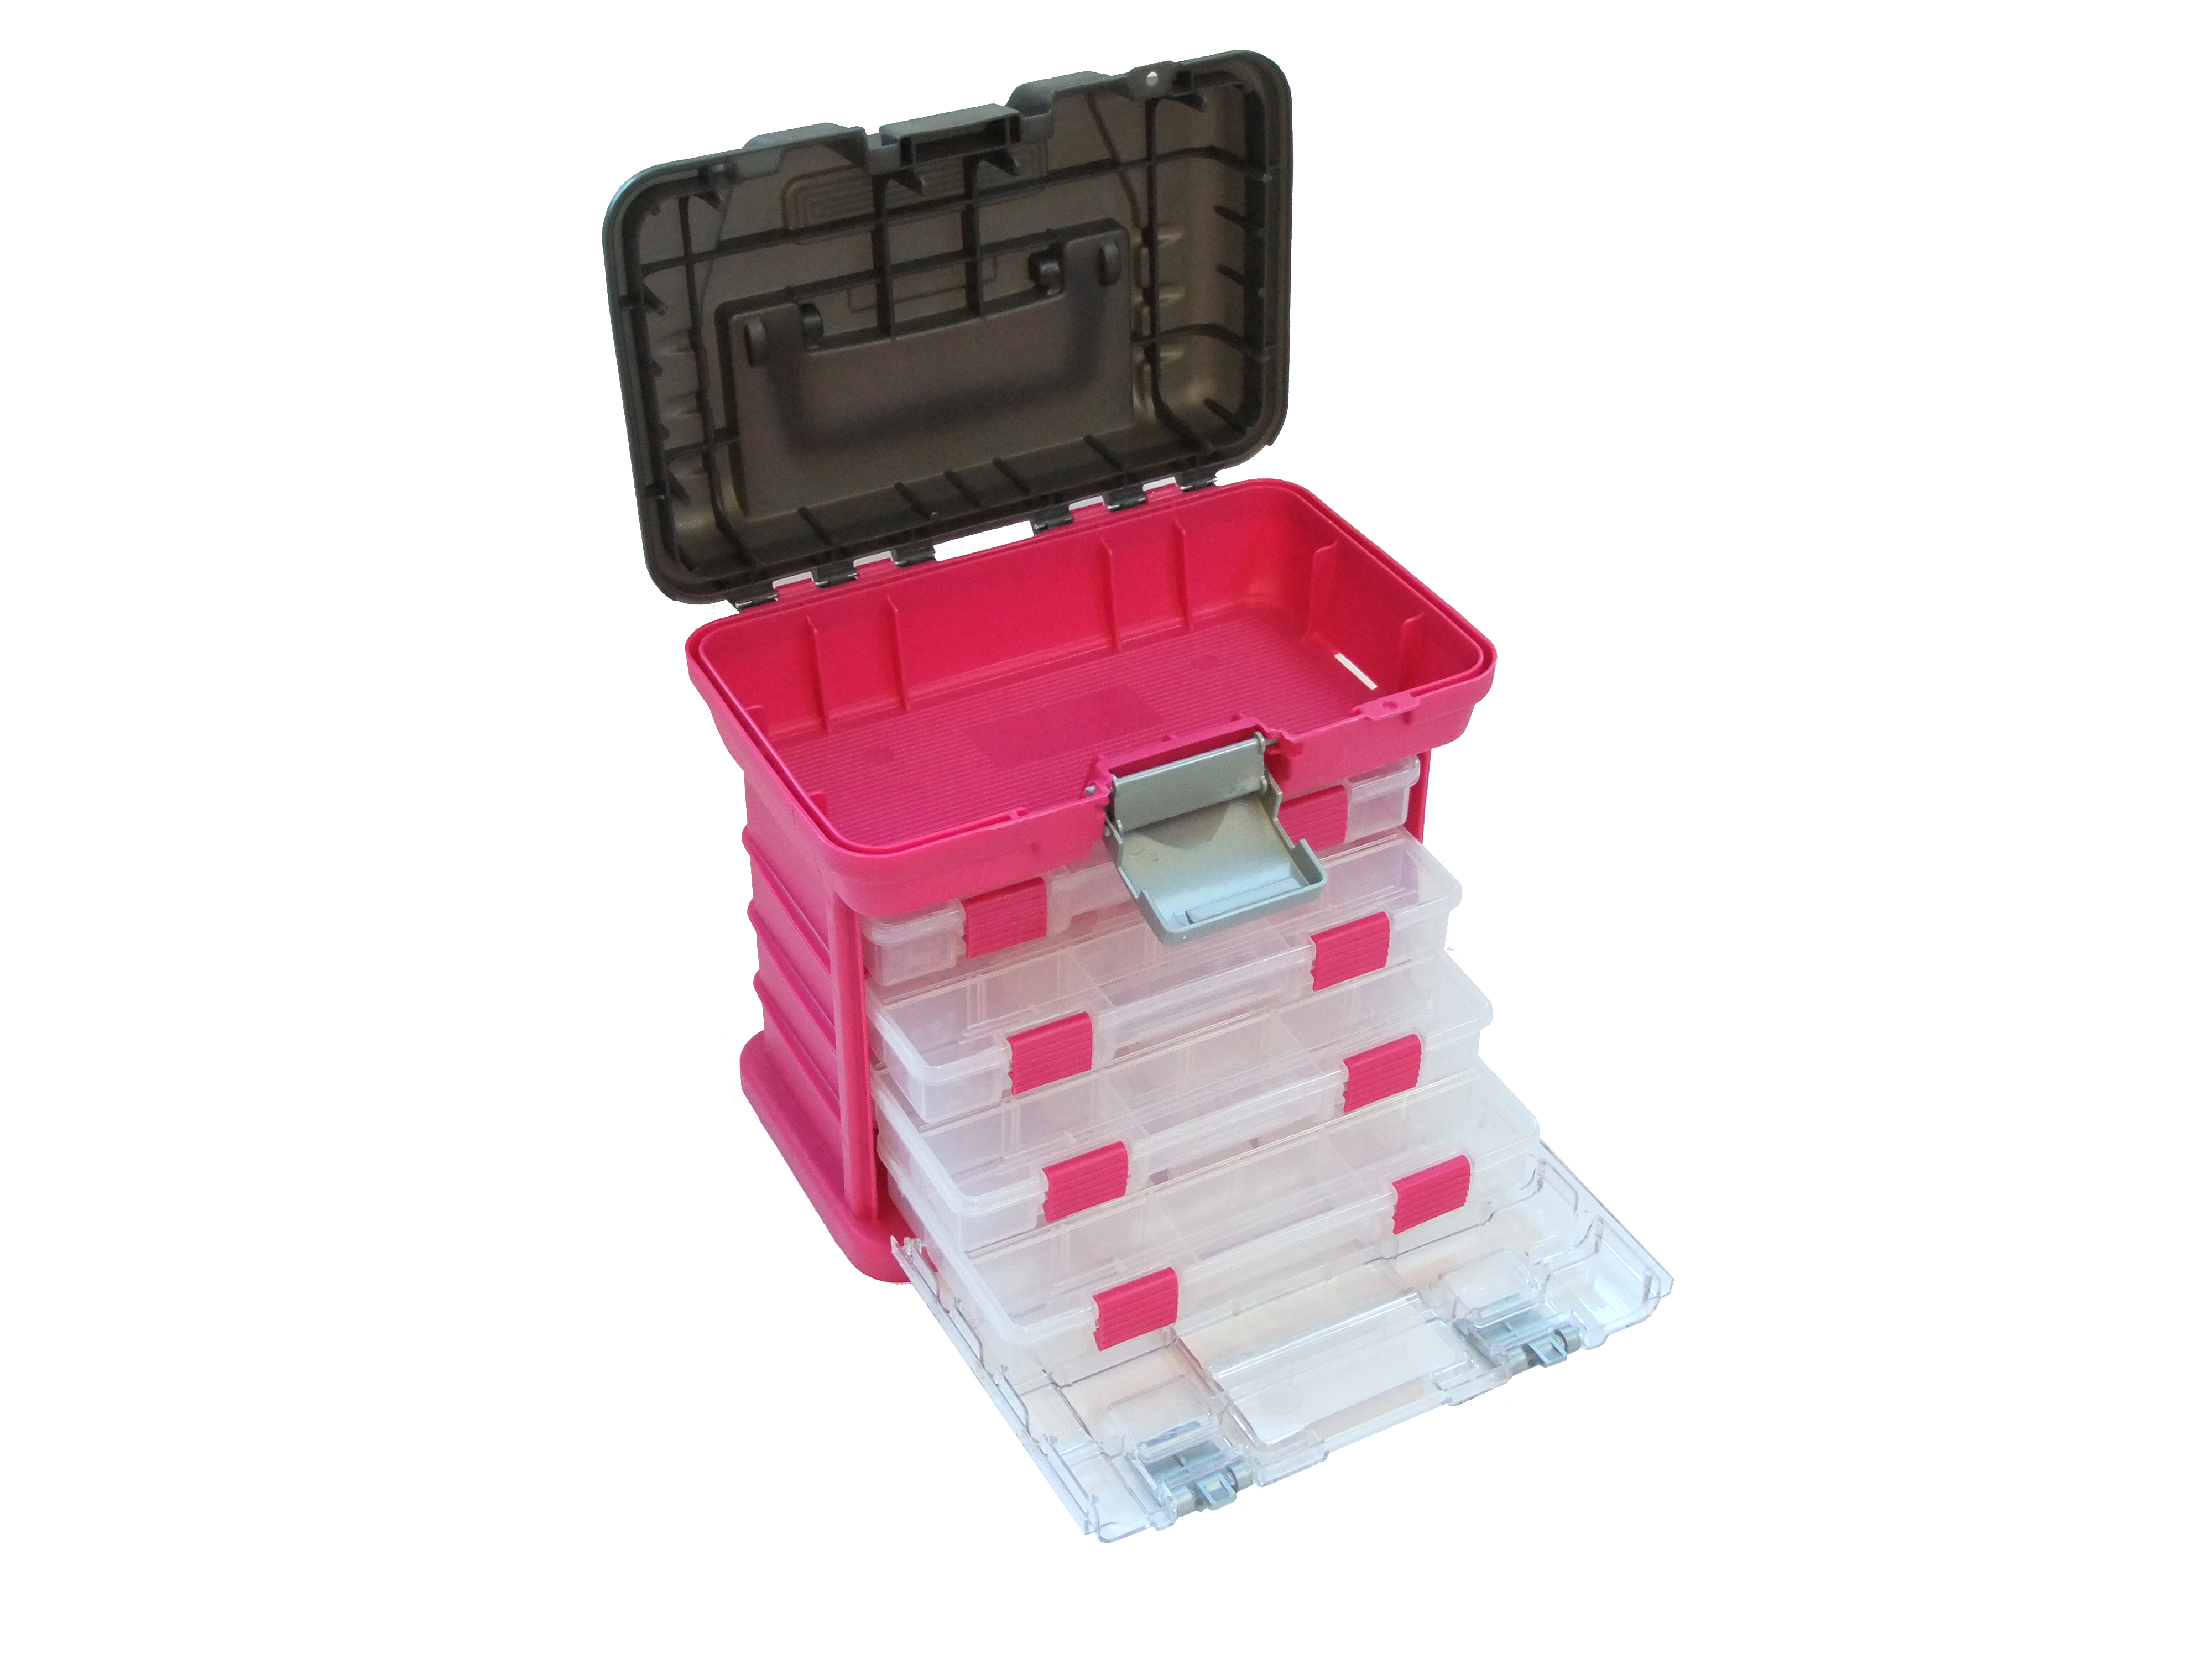 creative-options-grab-n-go rack-system-pink